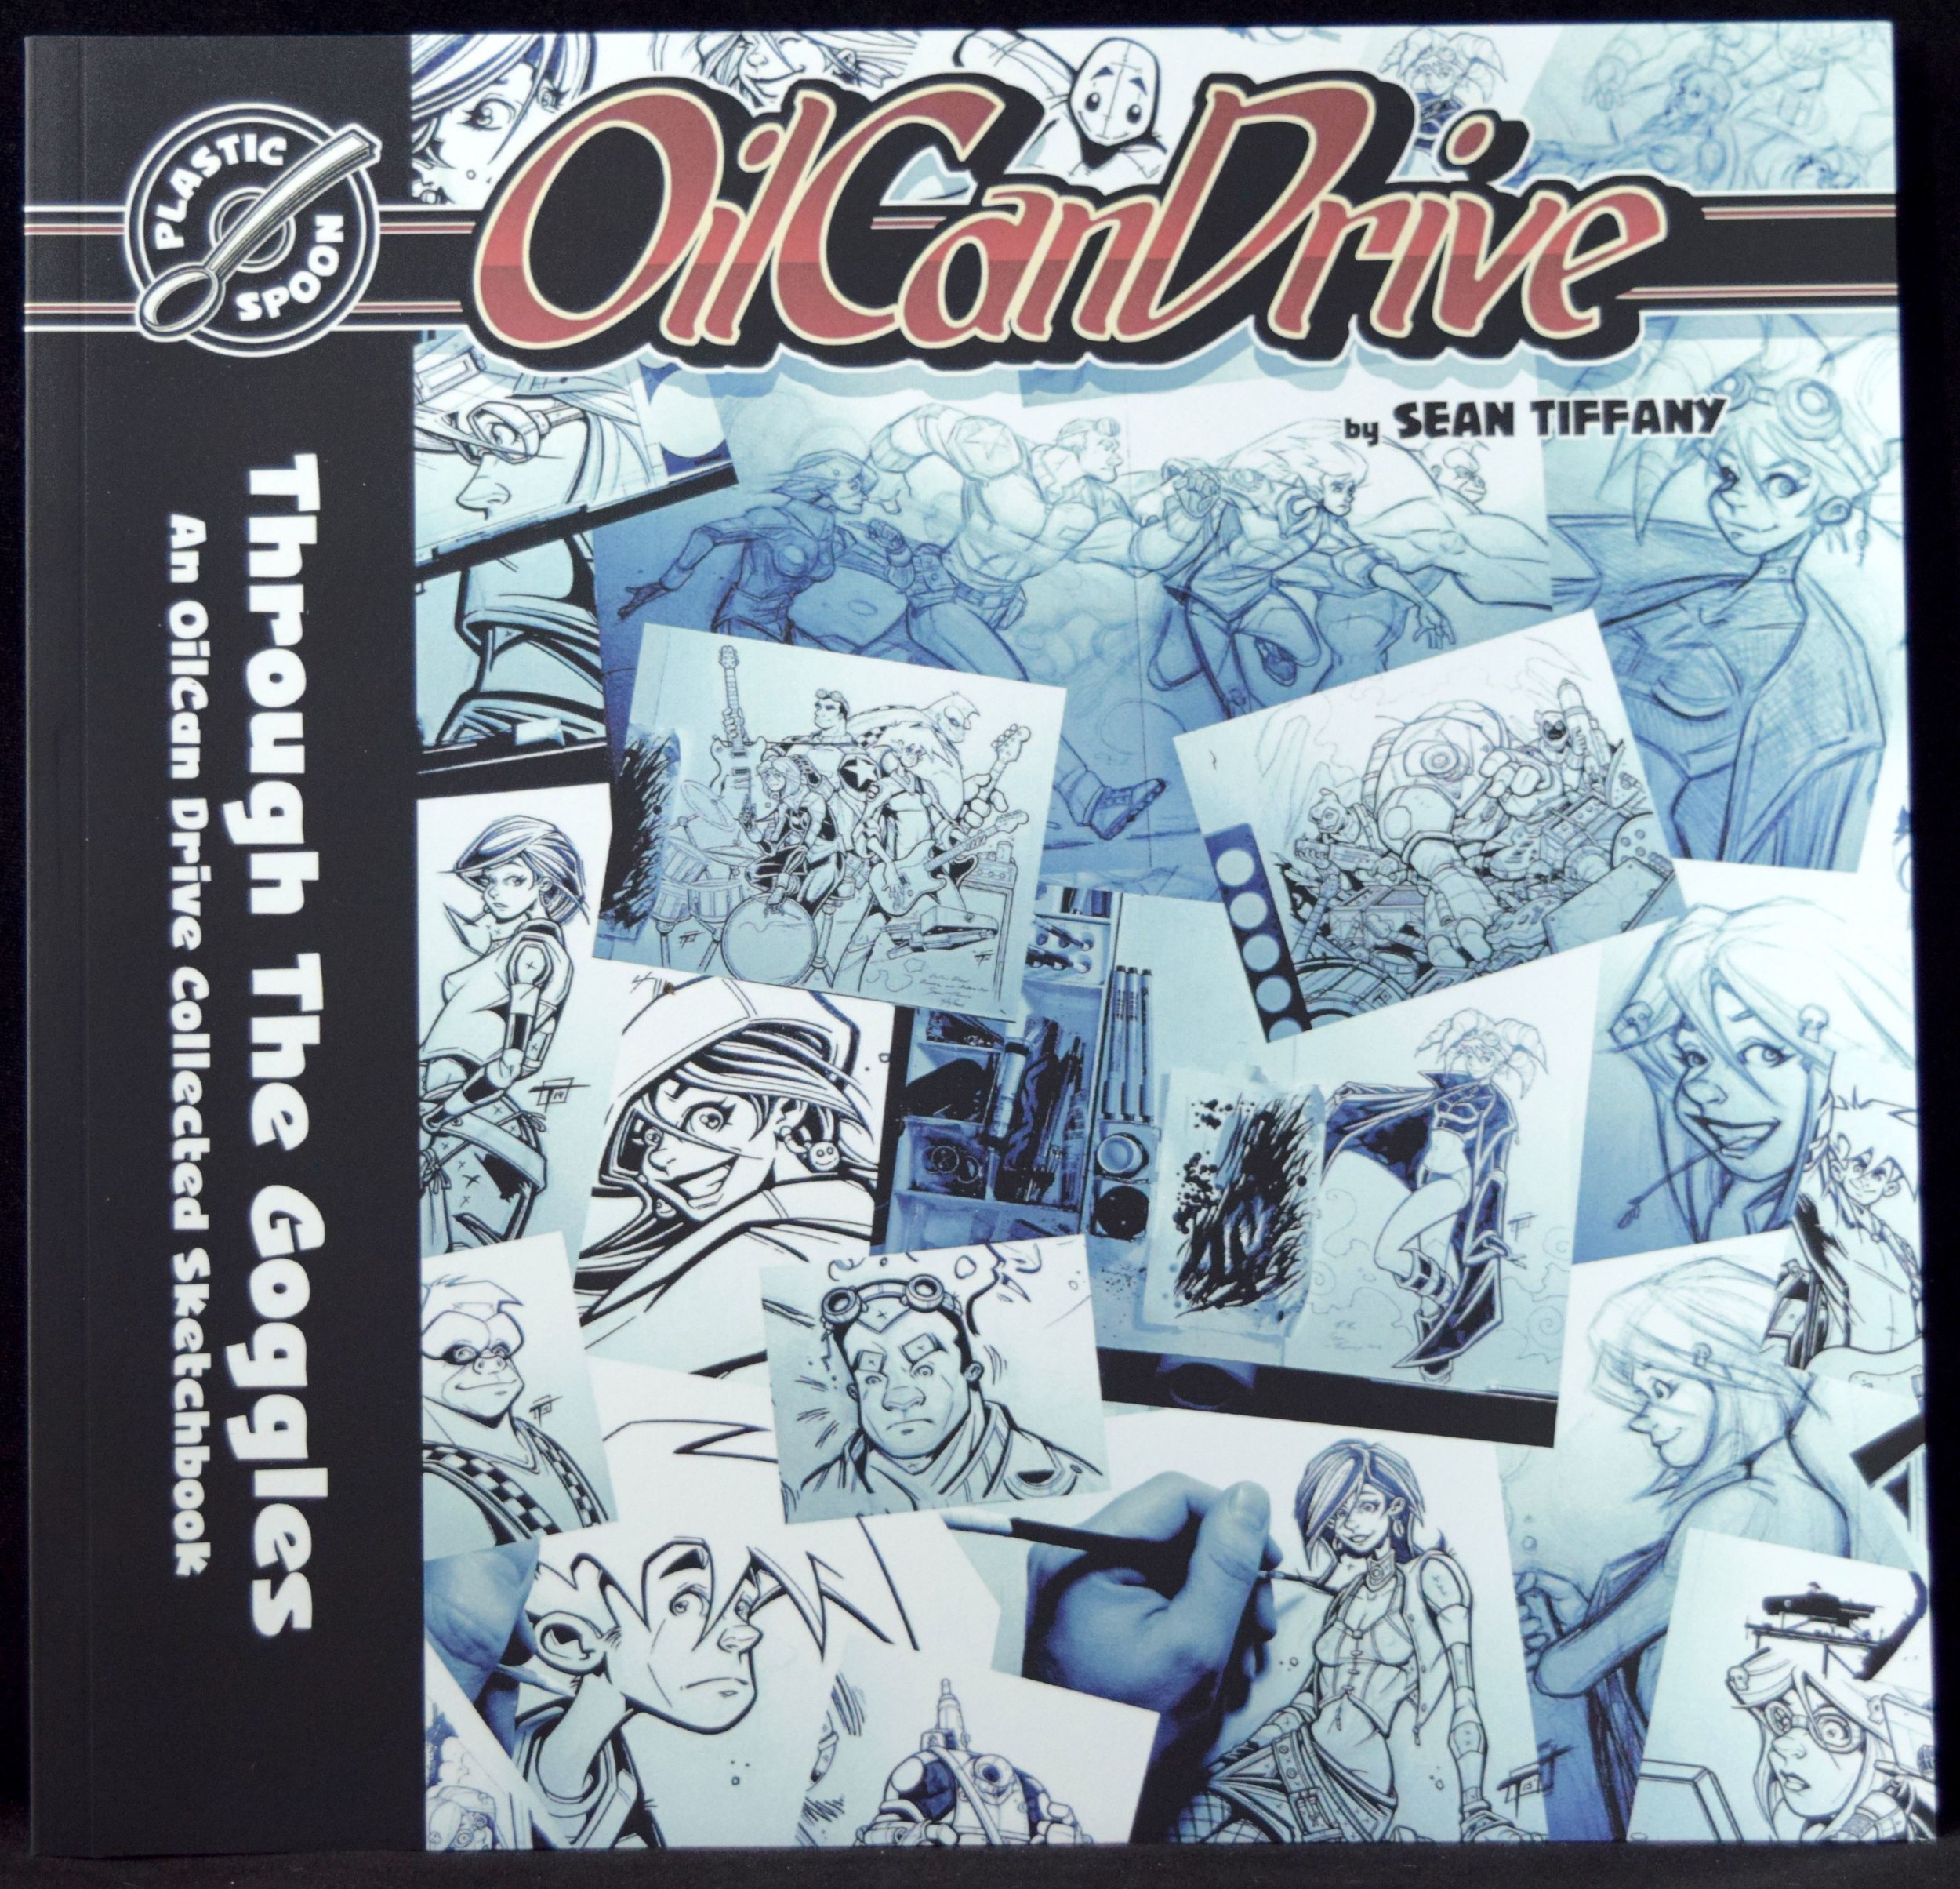 OilCan Drive: Through the Goggles Sketchbook by Sean Tiffany.